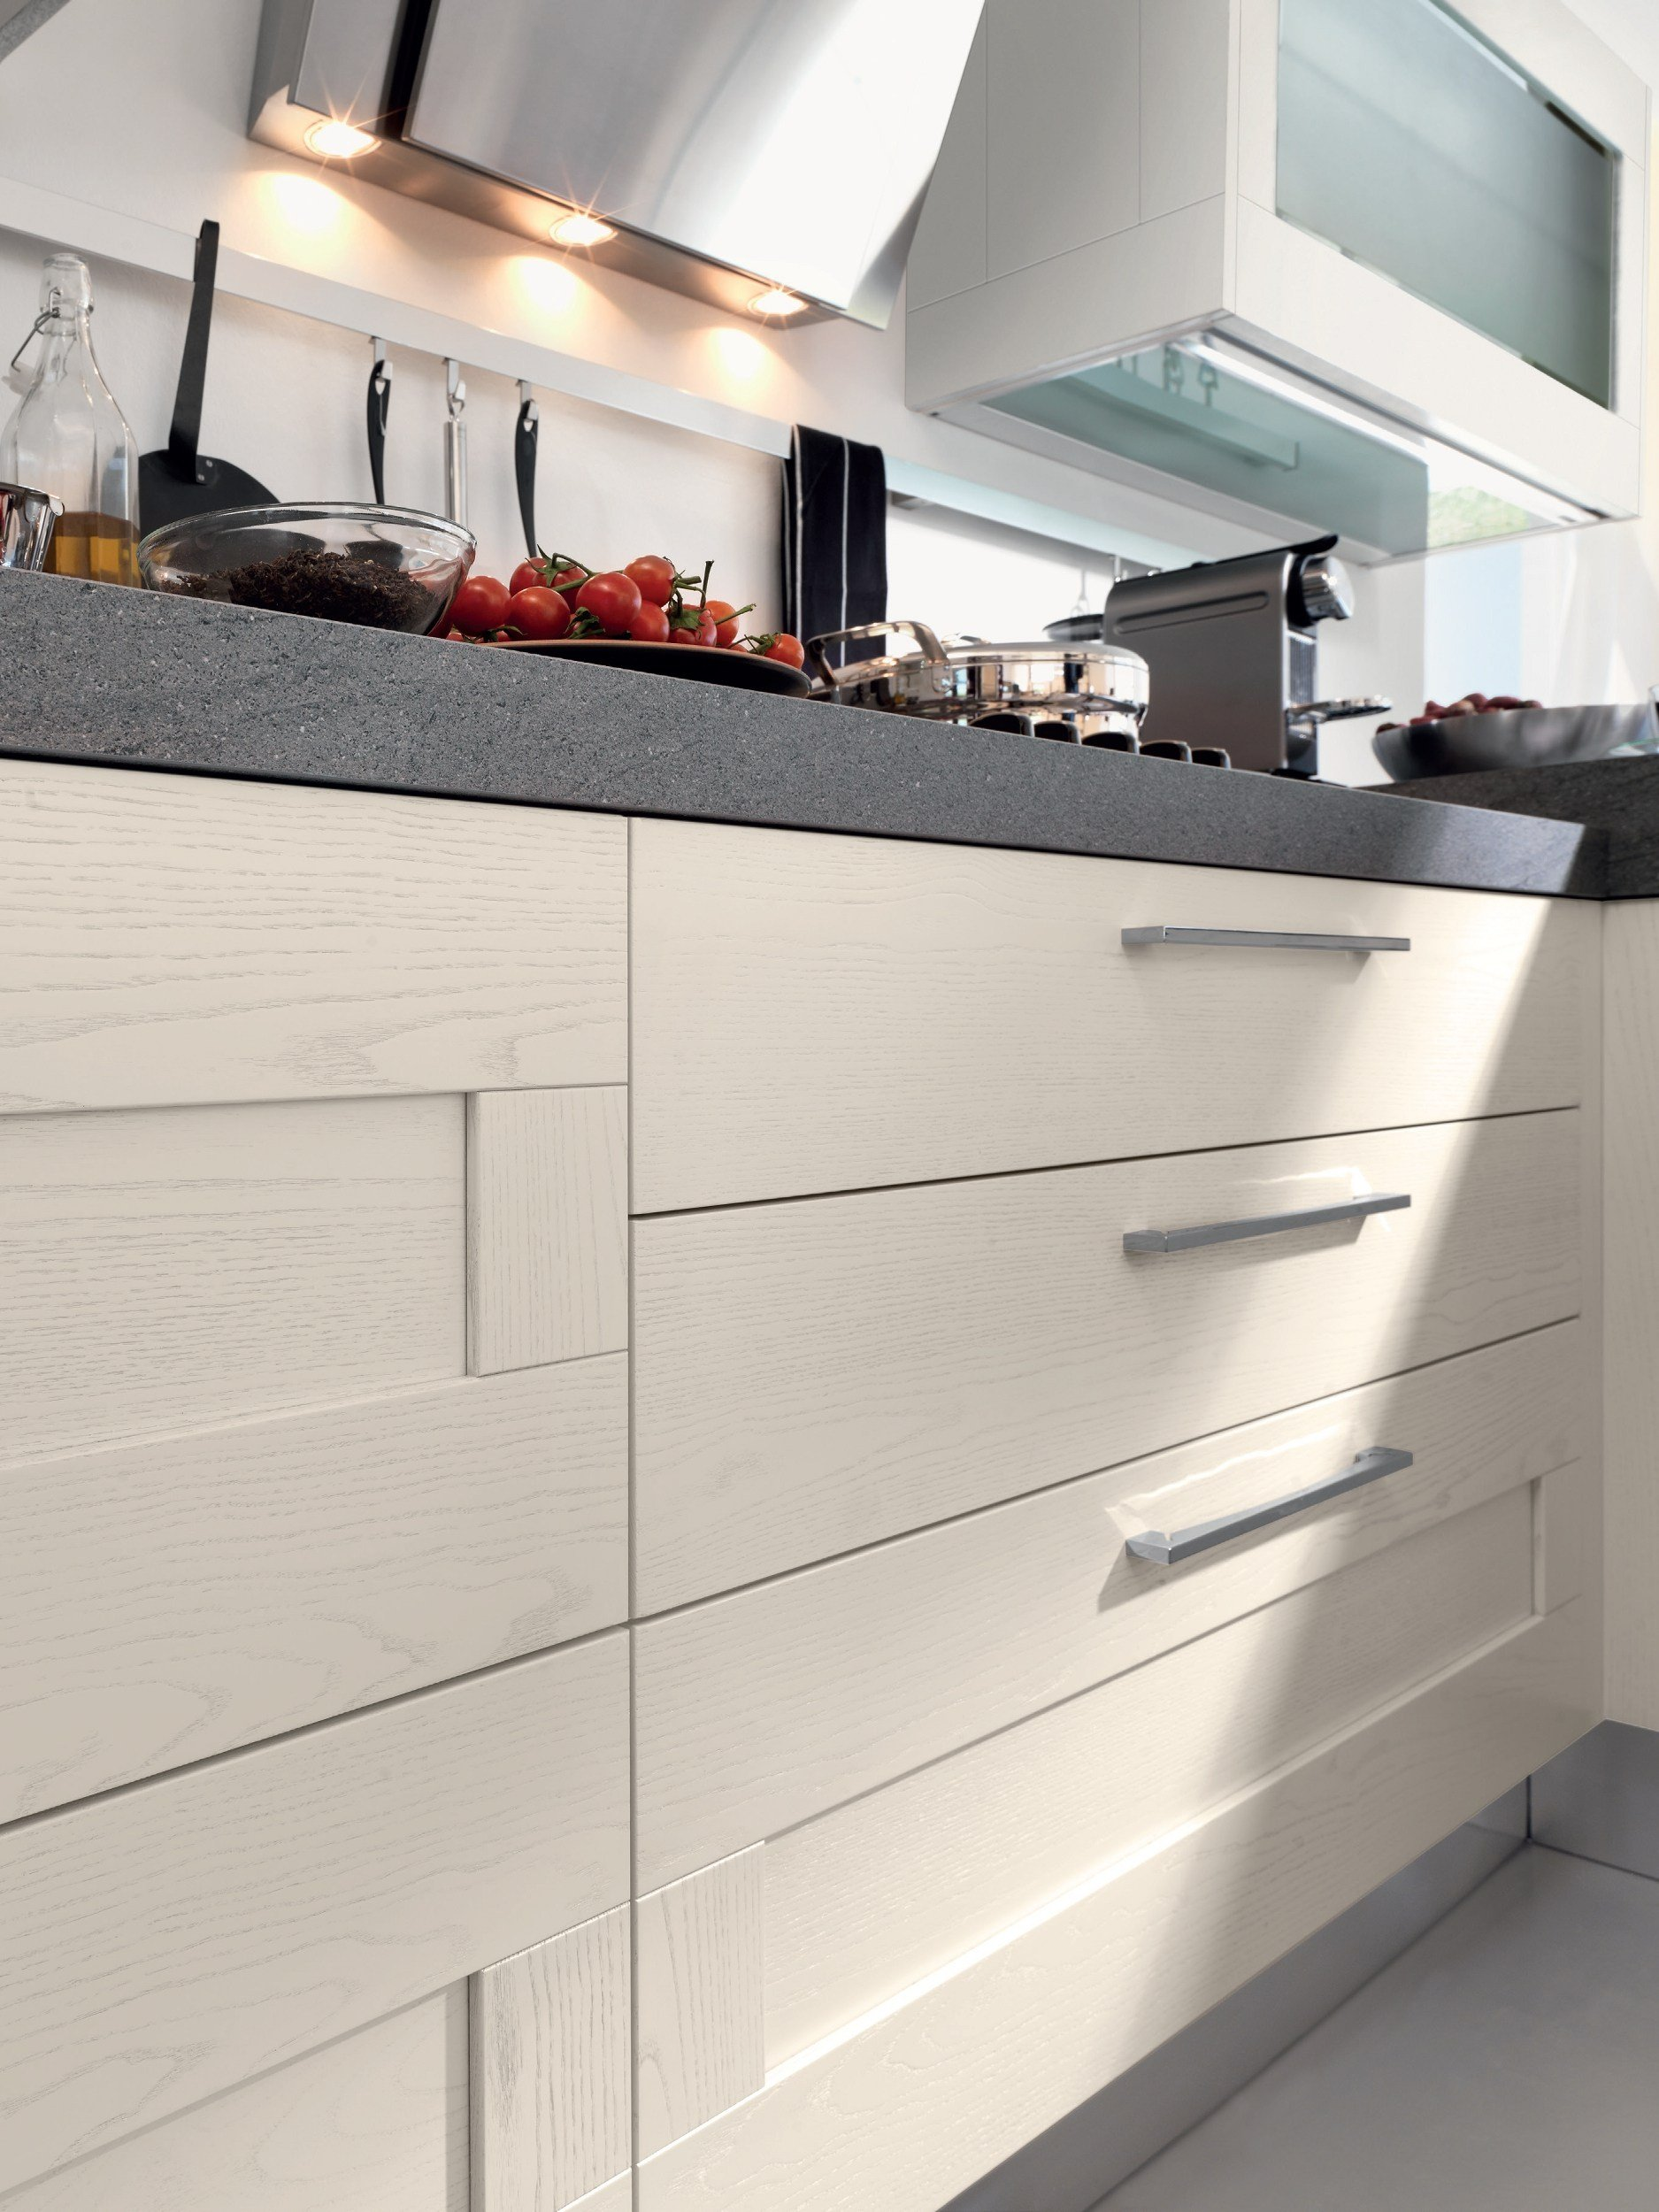 gallery kitchen with handles by cucine lube